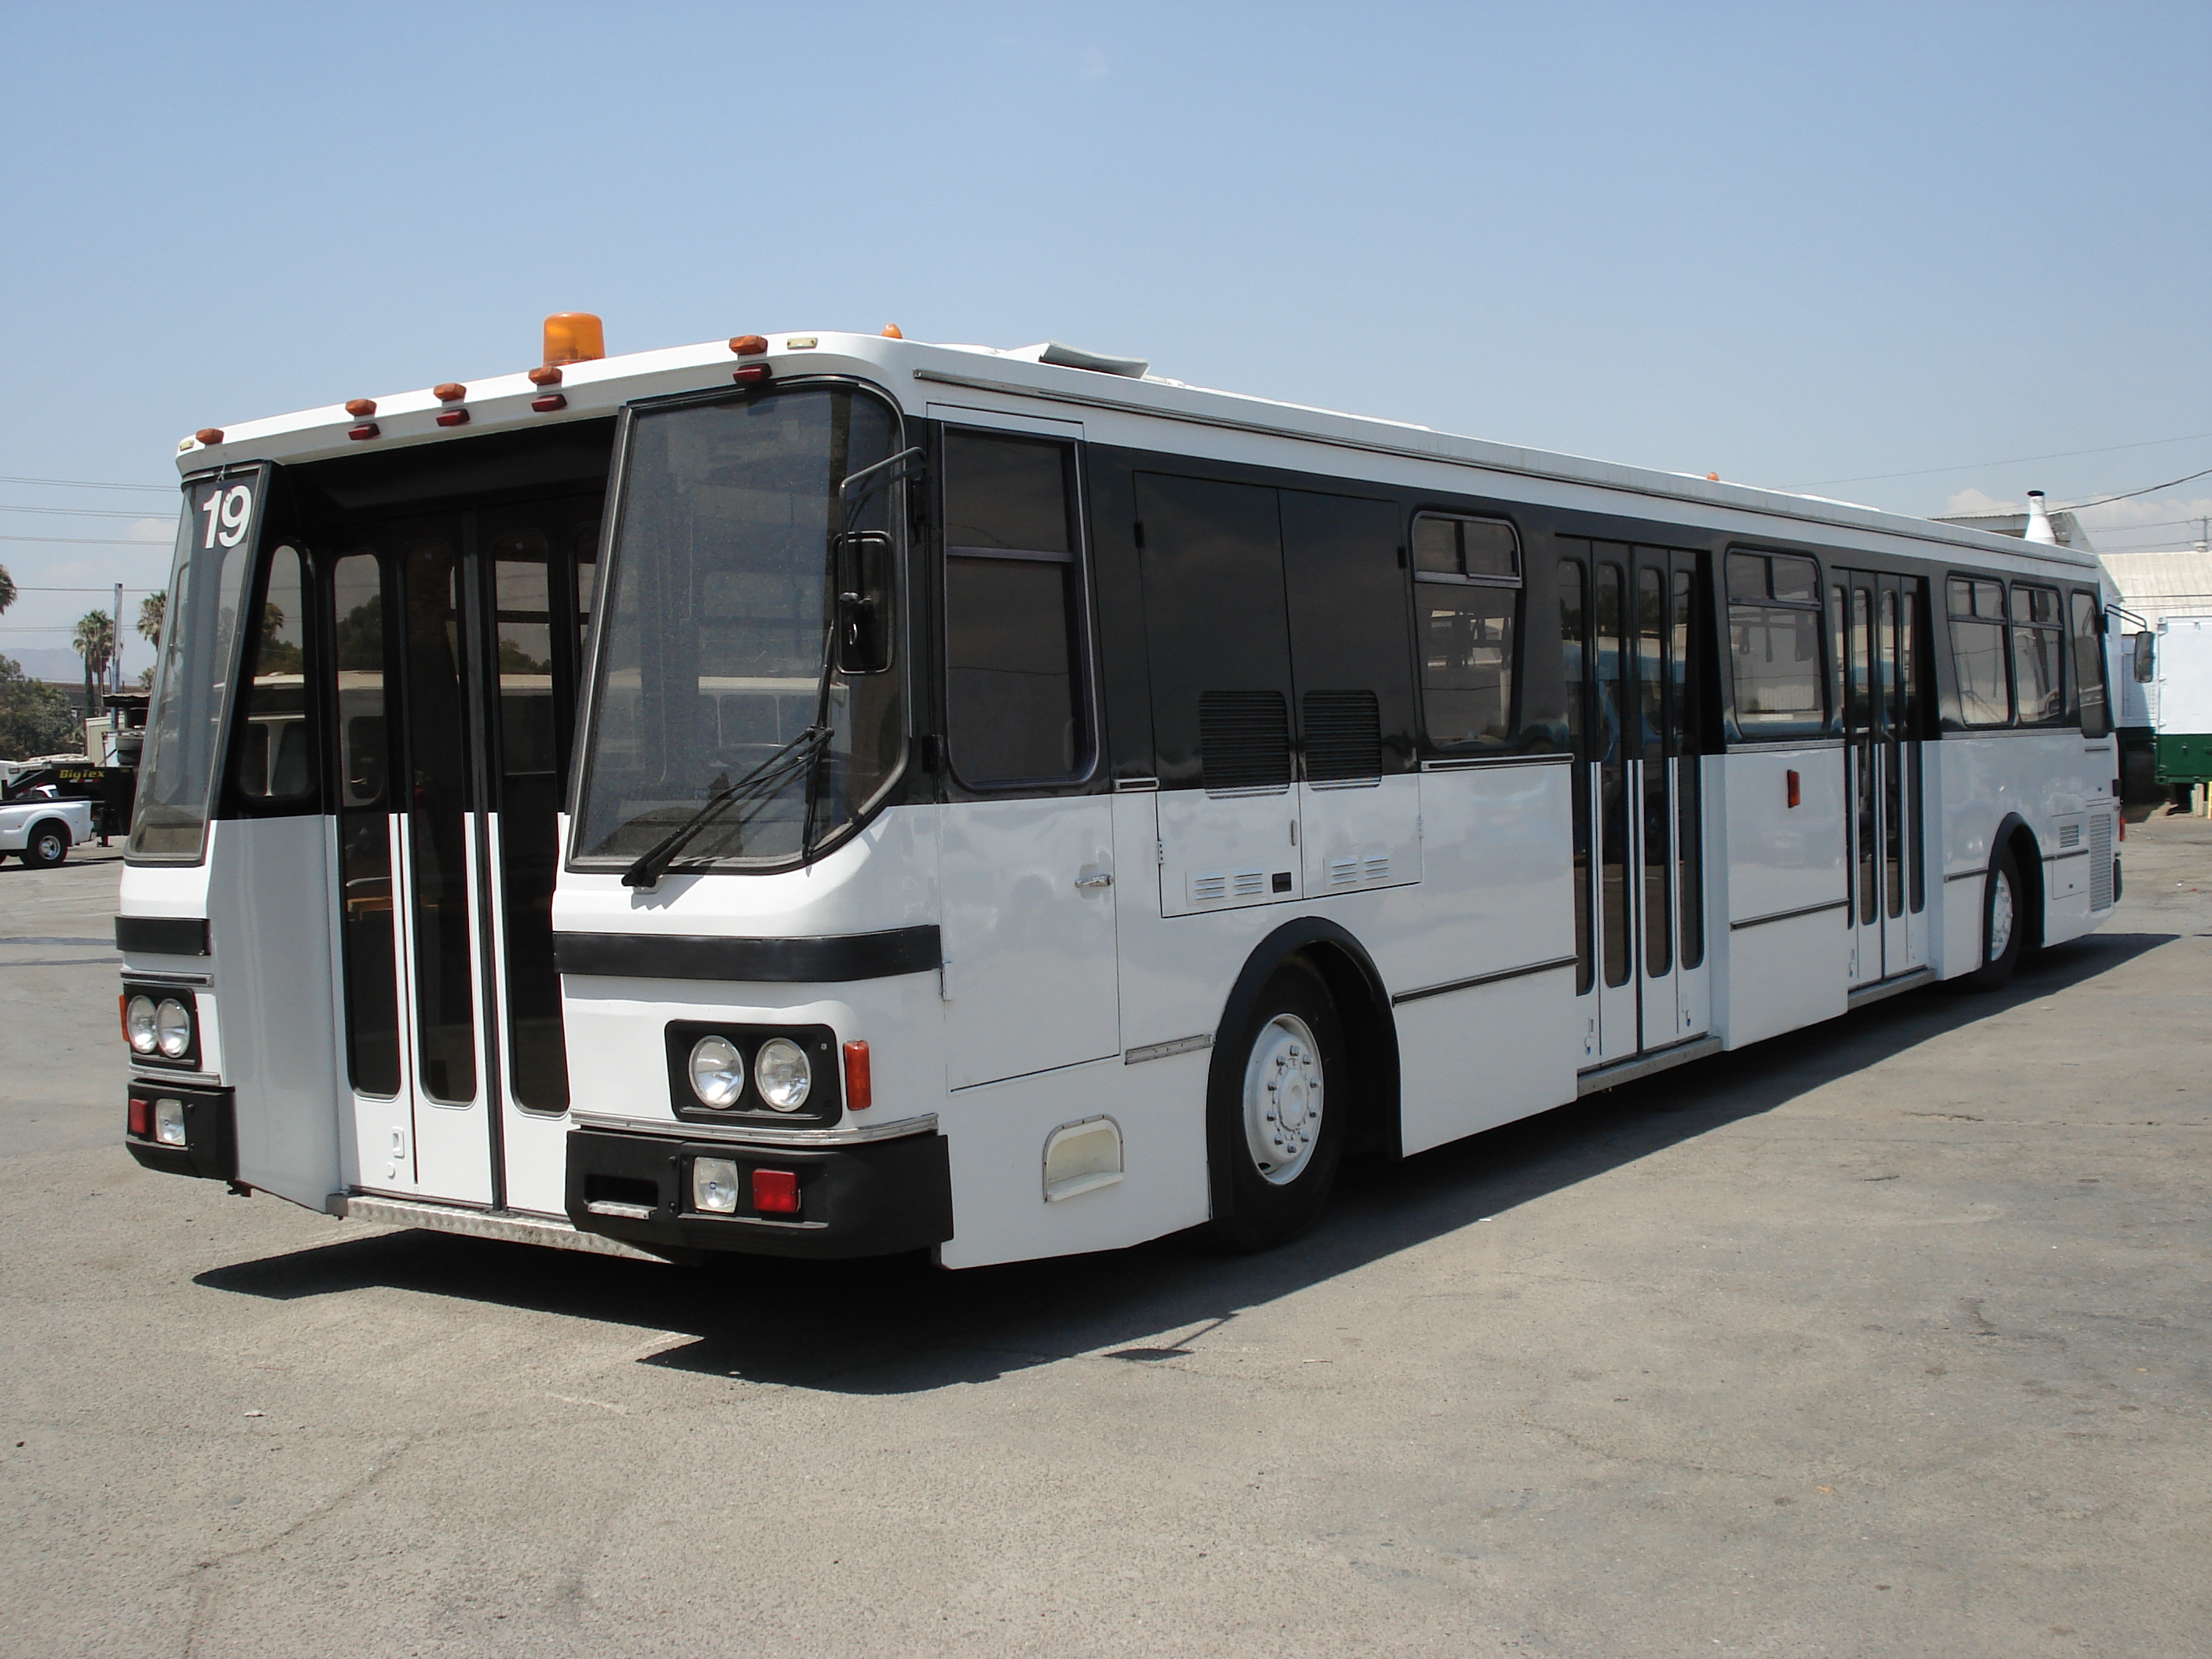 GRAF u0026 STIF (1991) with 1 in stock - Used Buses for Sale at Transit Sales International